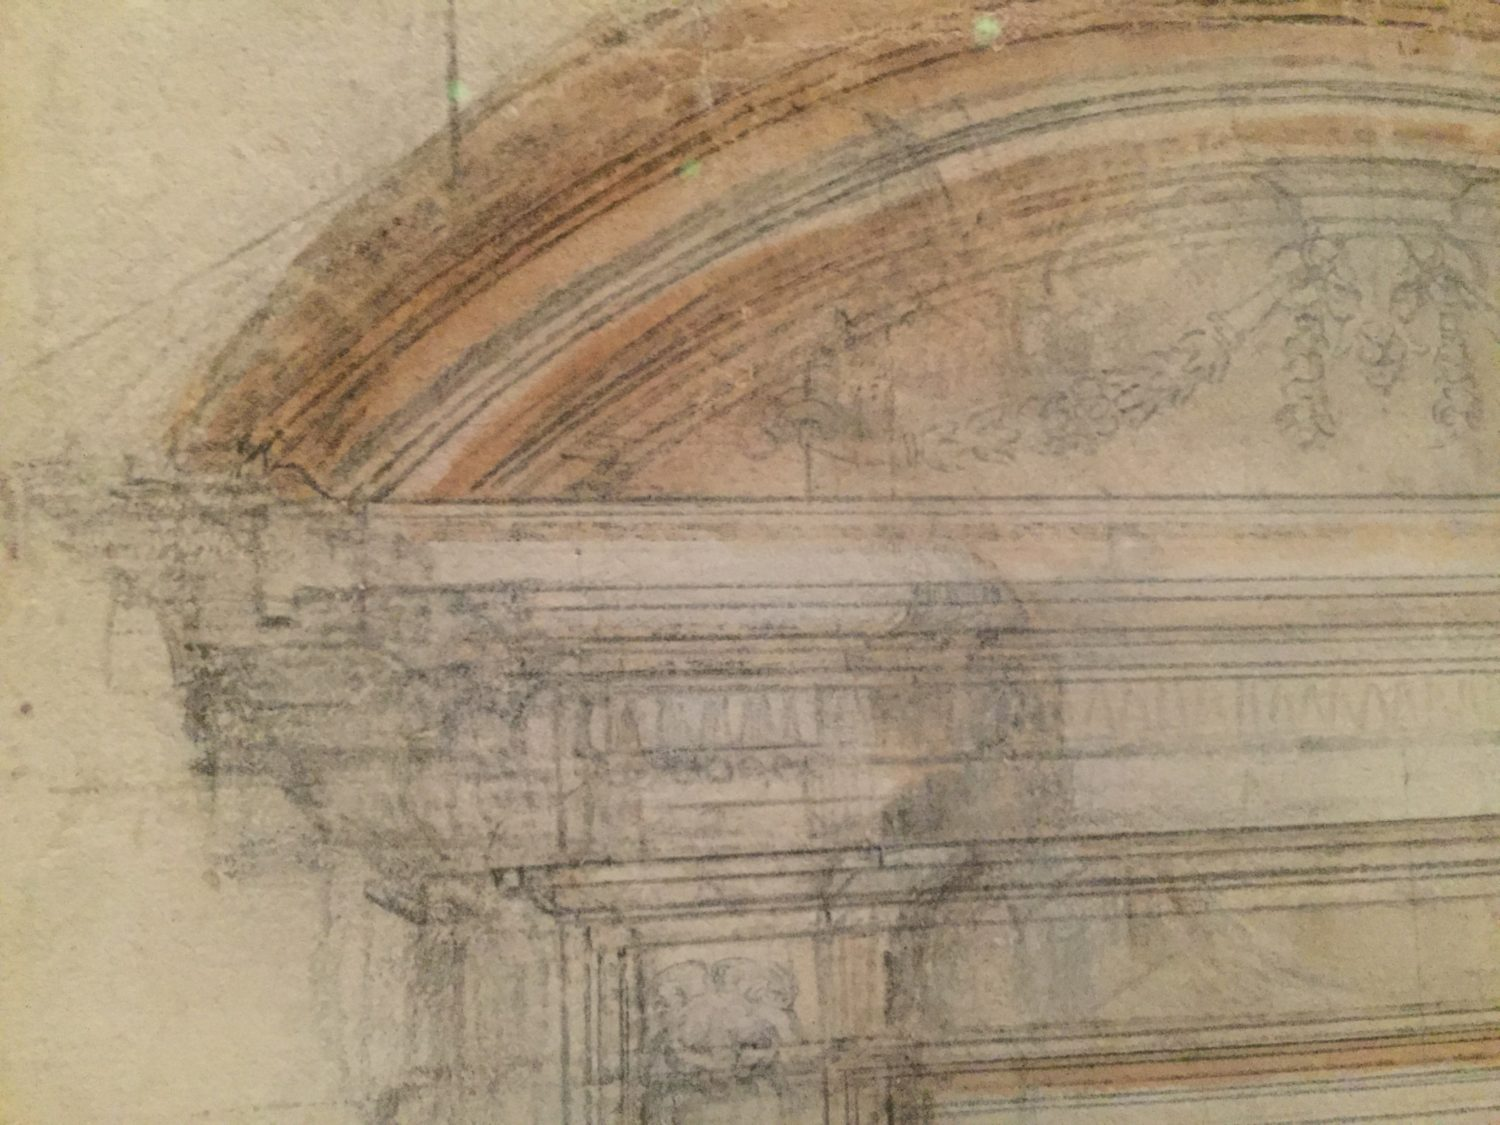 the beautiful drawings of michelangelo show us why